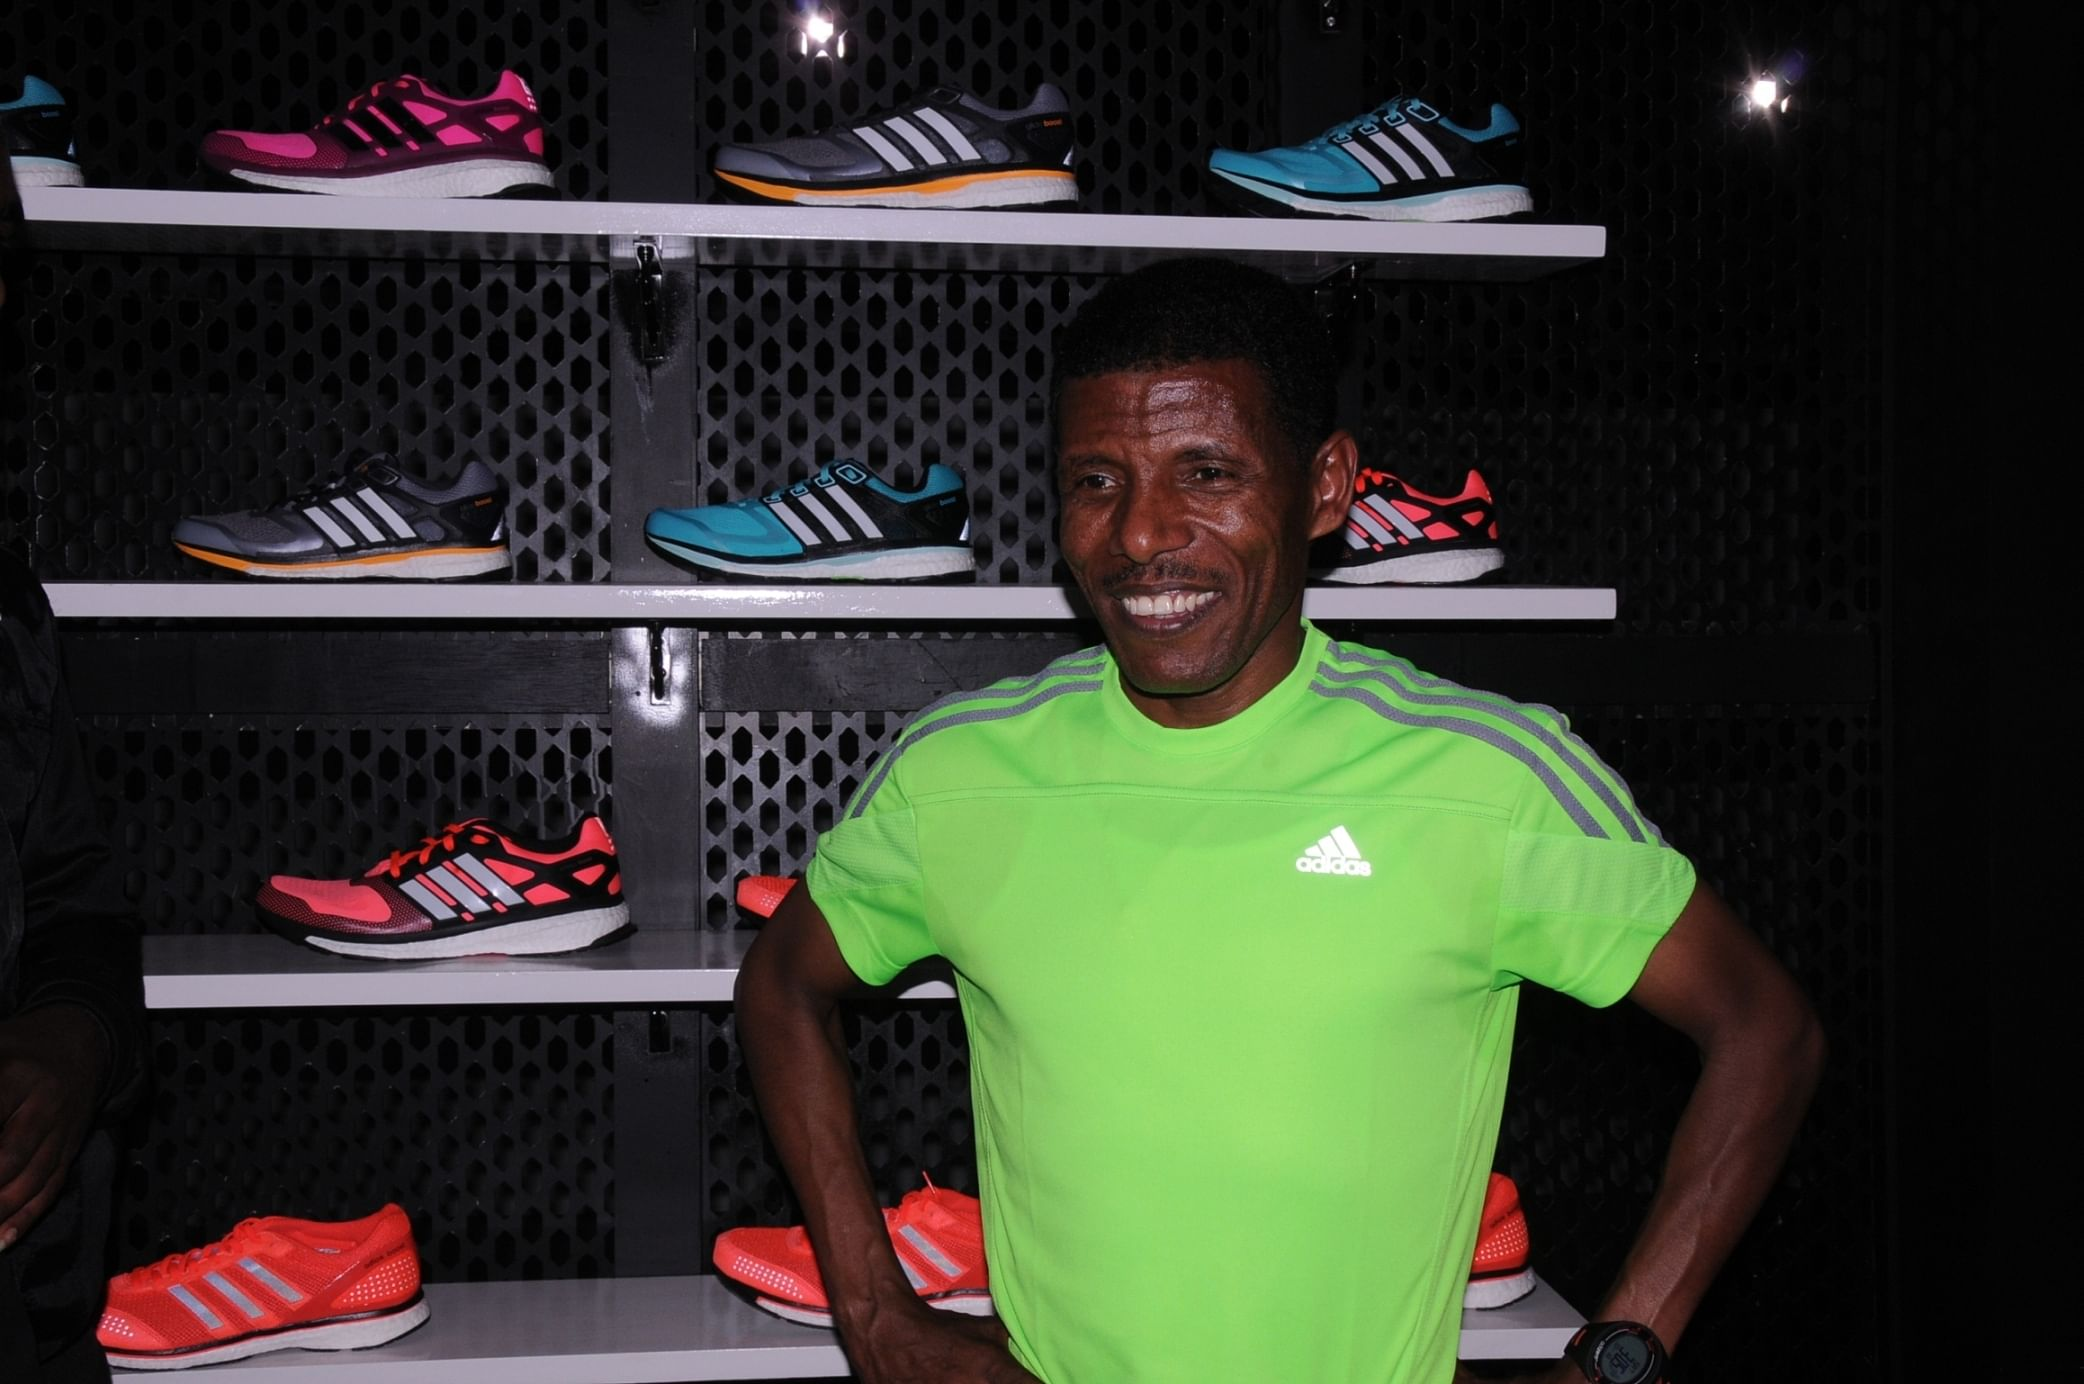 Interview with Haile Gebreselassie -